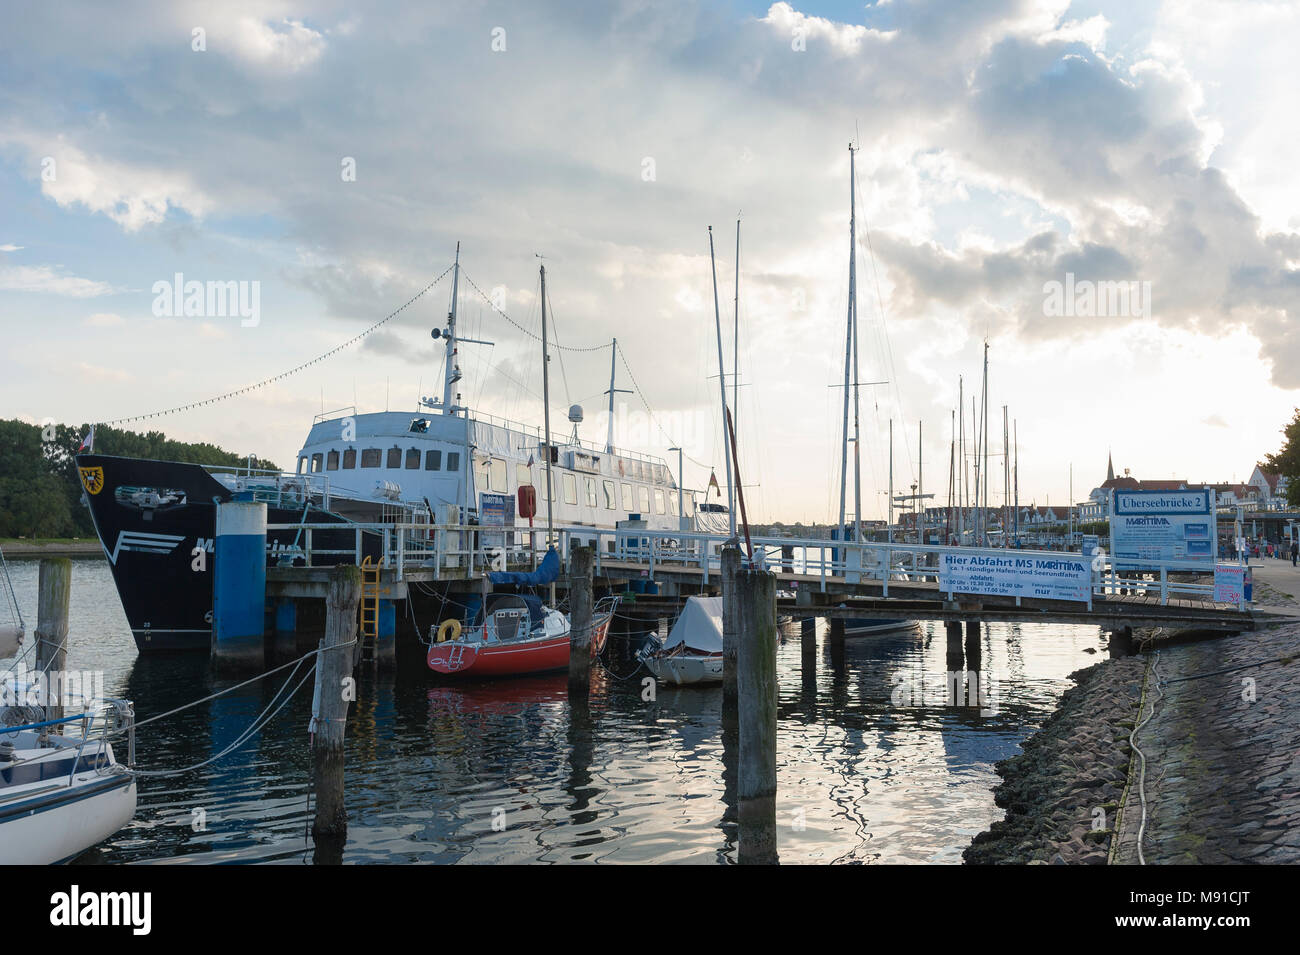 Pier at the Trave river, Travemuende, Baltic Sea, Schleswig-Holstein, Germany, Europe - Stock Image